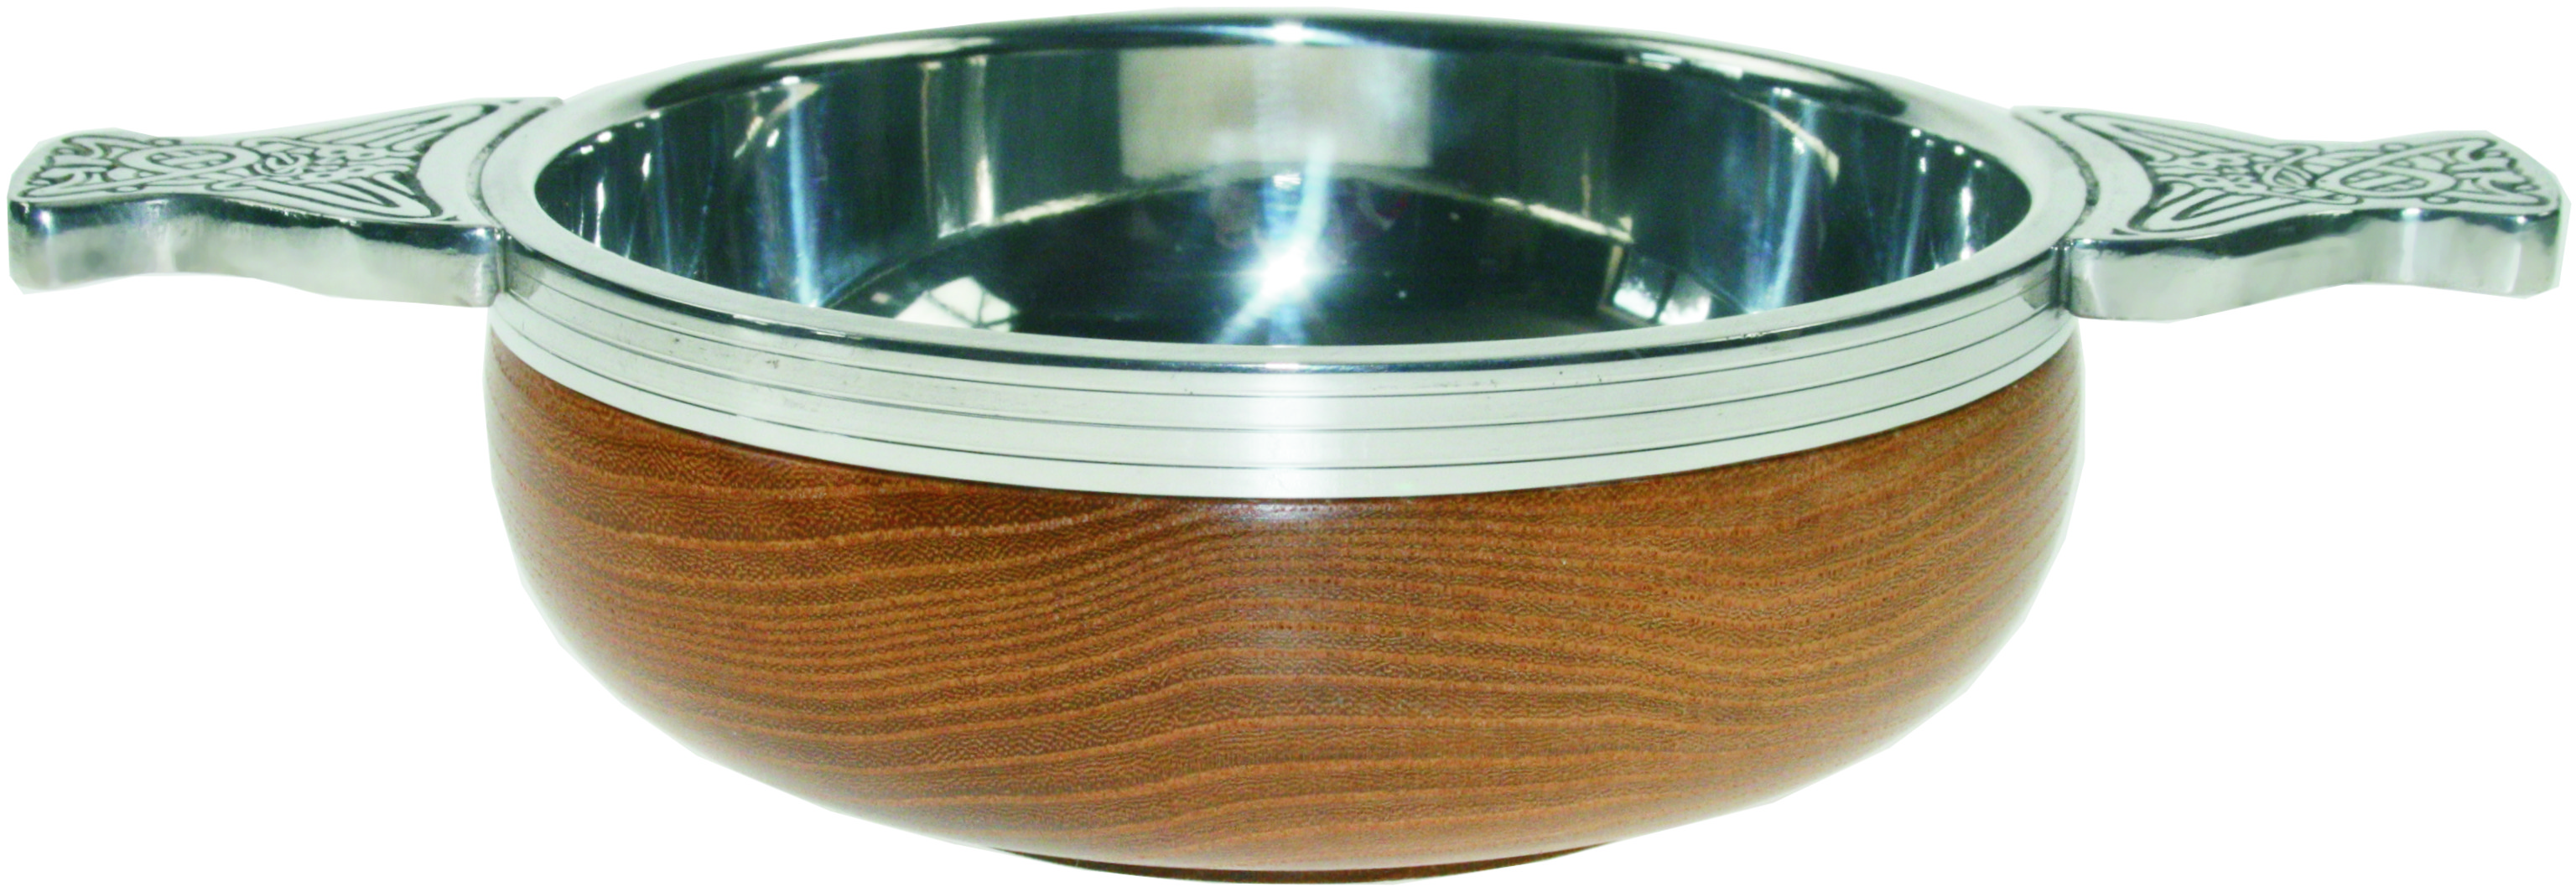 "Pewter and Wooden Base Quaich Bowl 10cm (4"")"